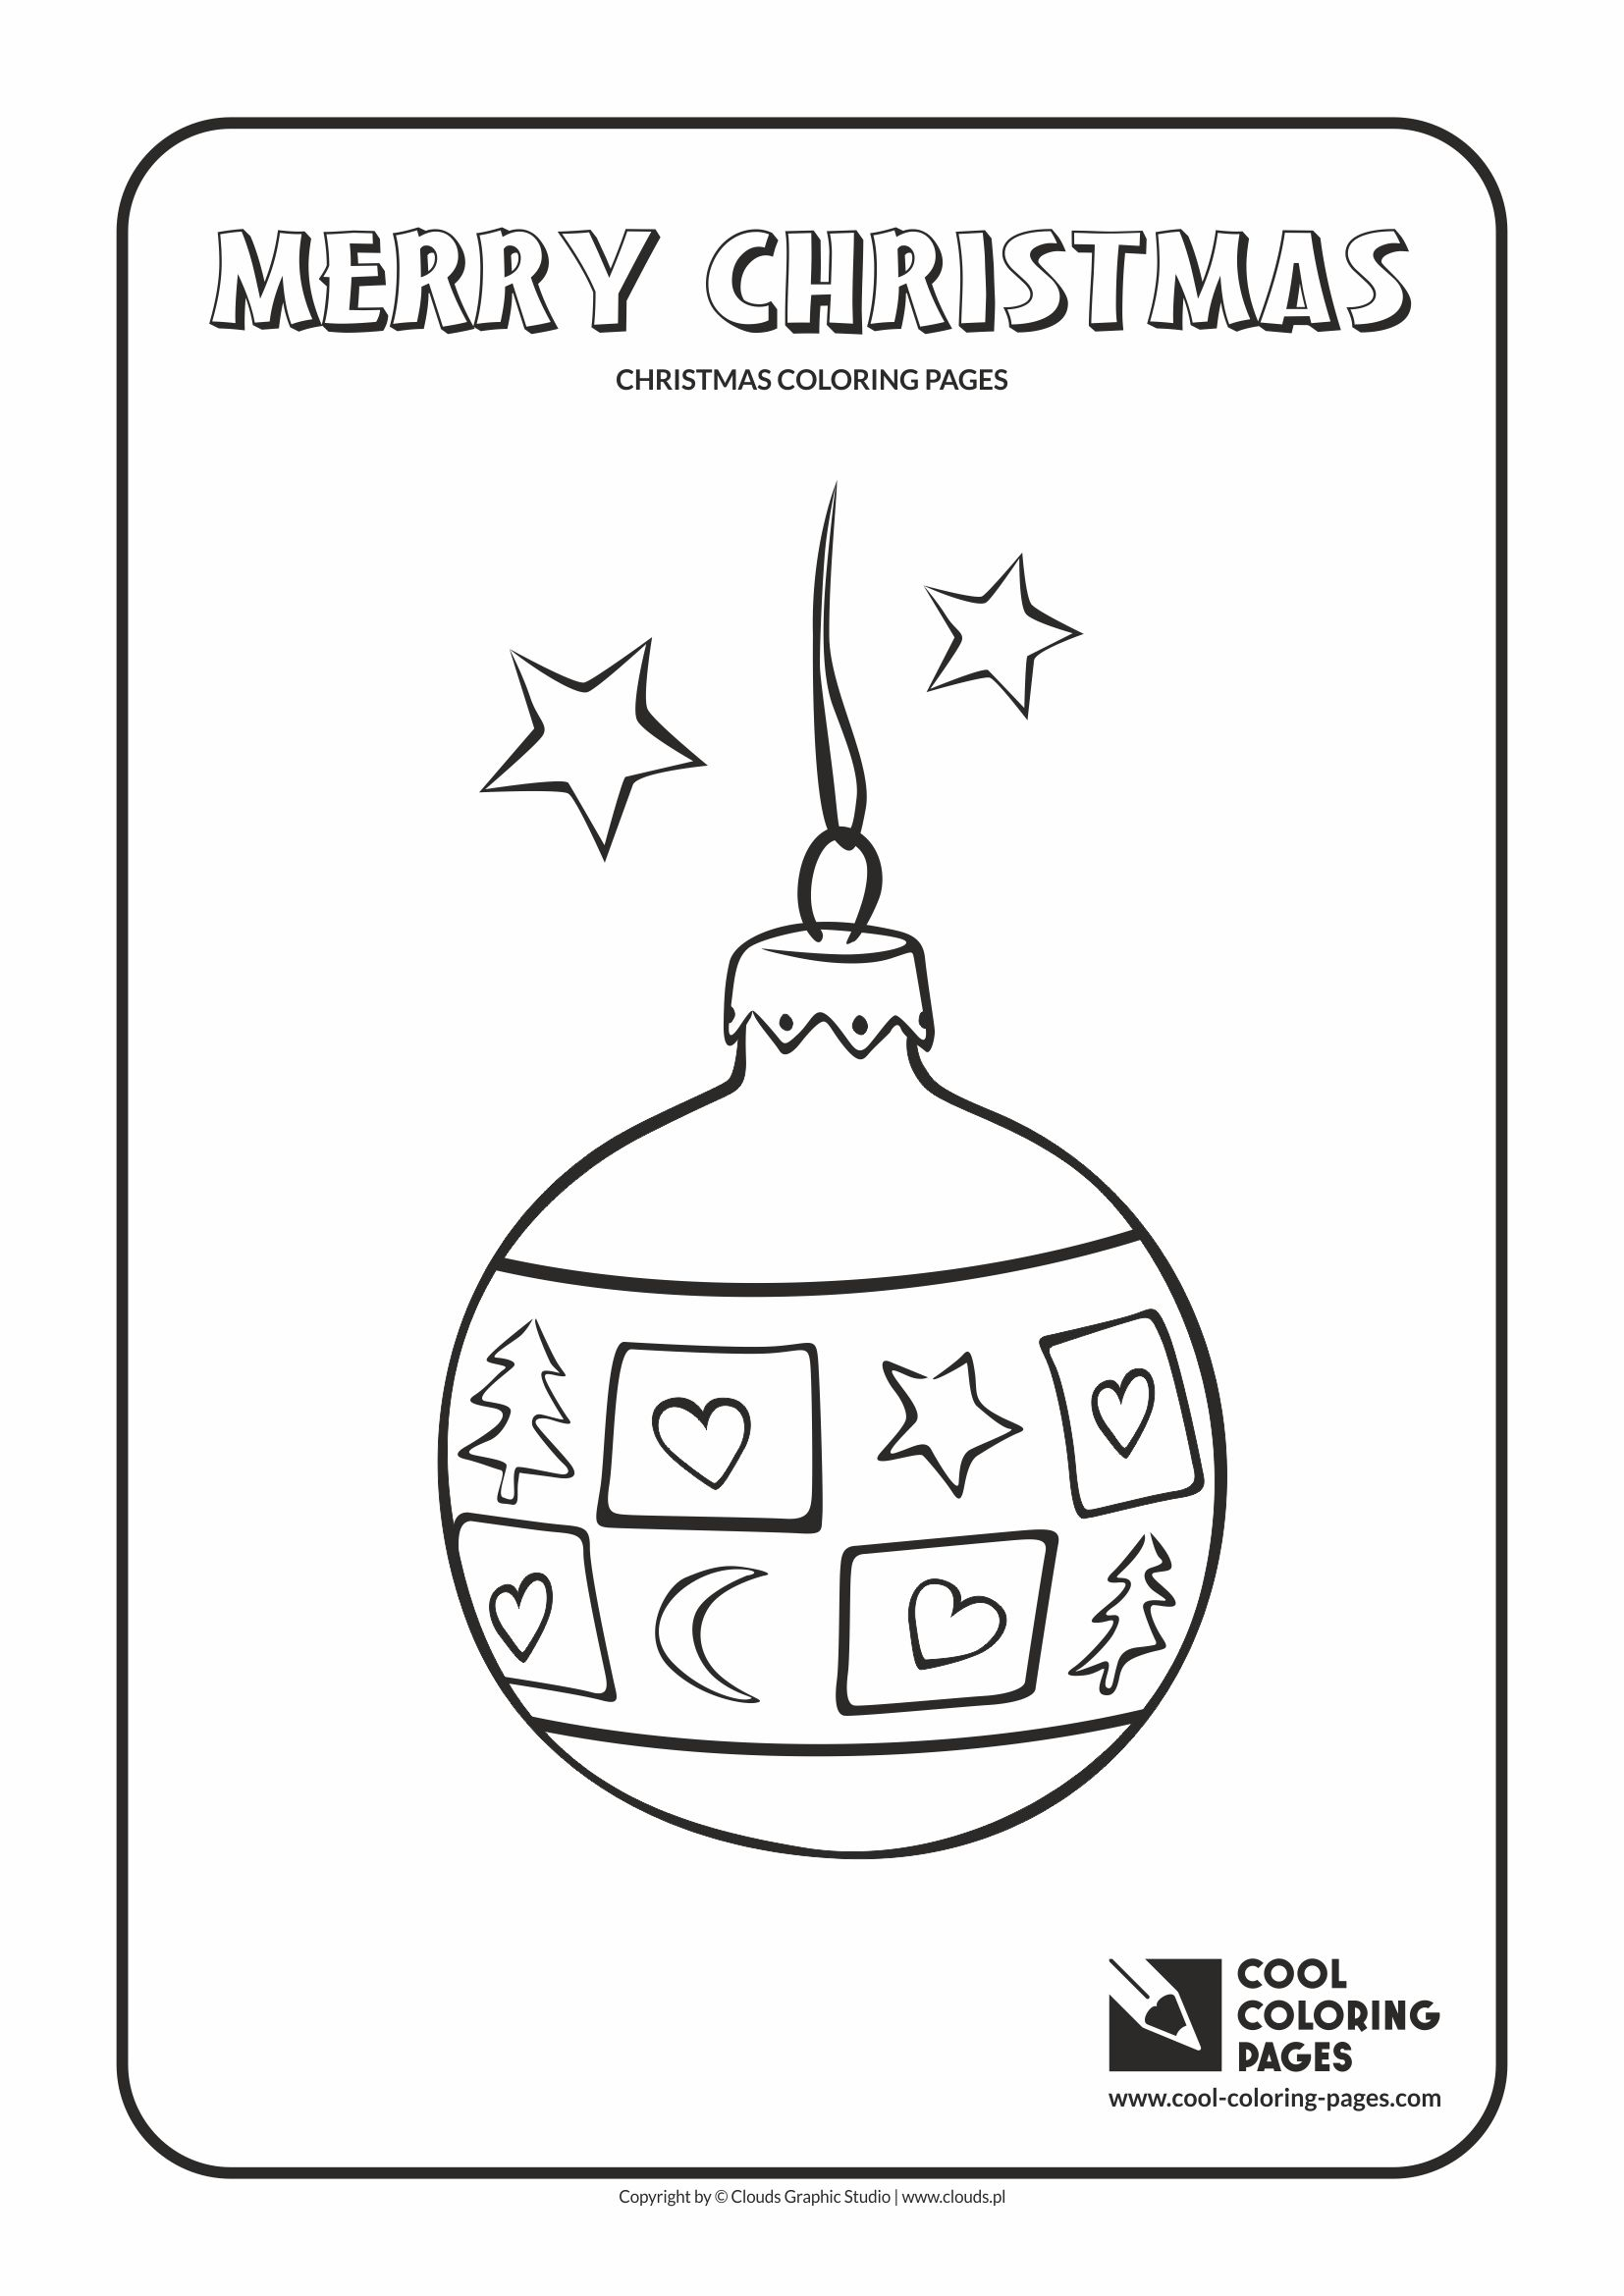 Cool Coloring Pages - Holidays / Christmas glass ball no 1 / Coloring page with Christmas glass ball no 1